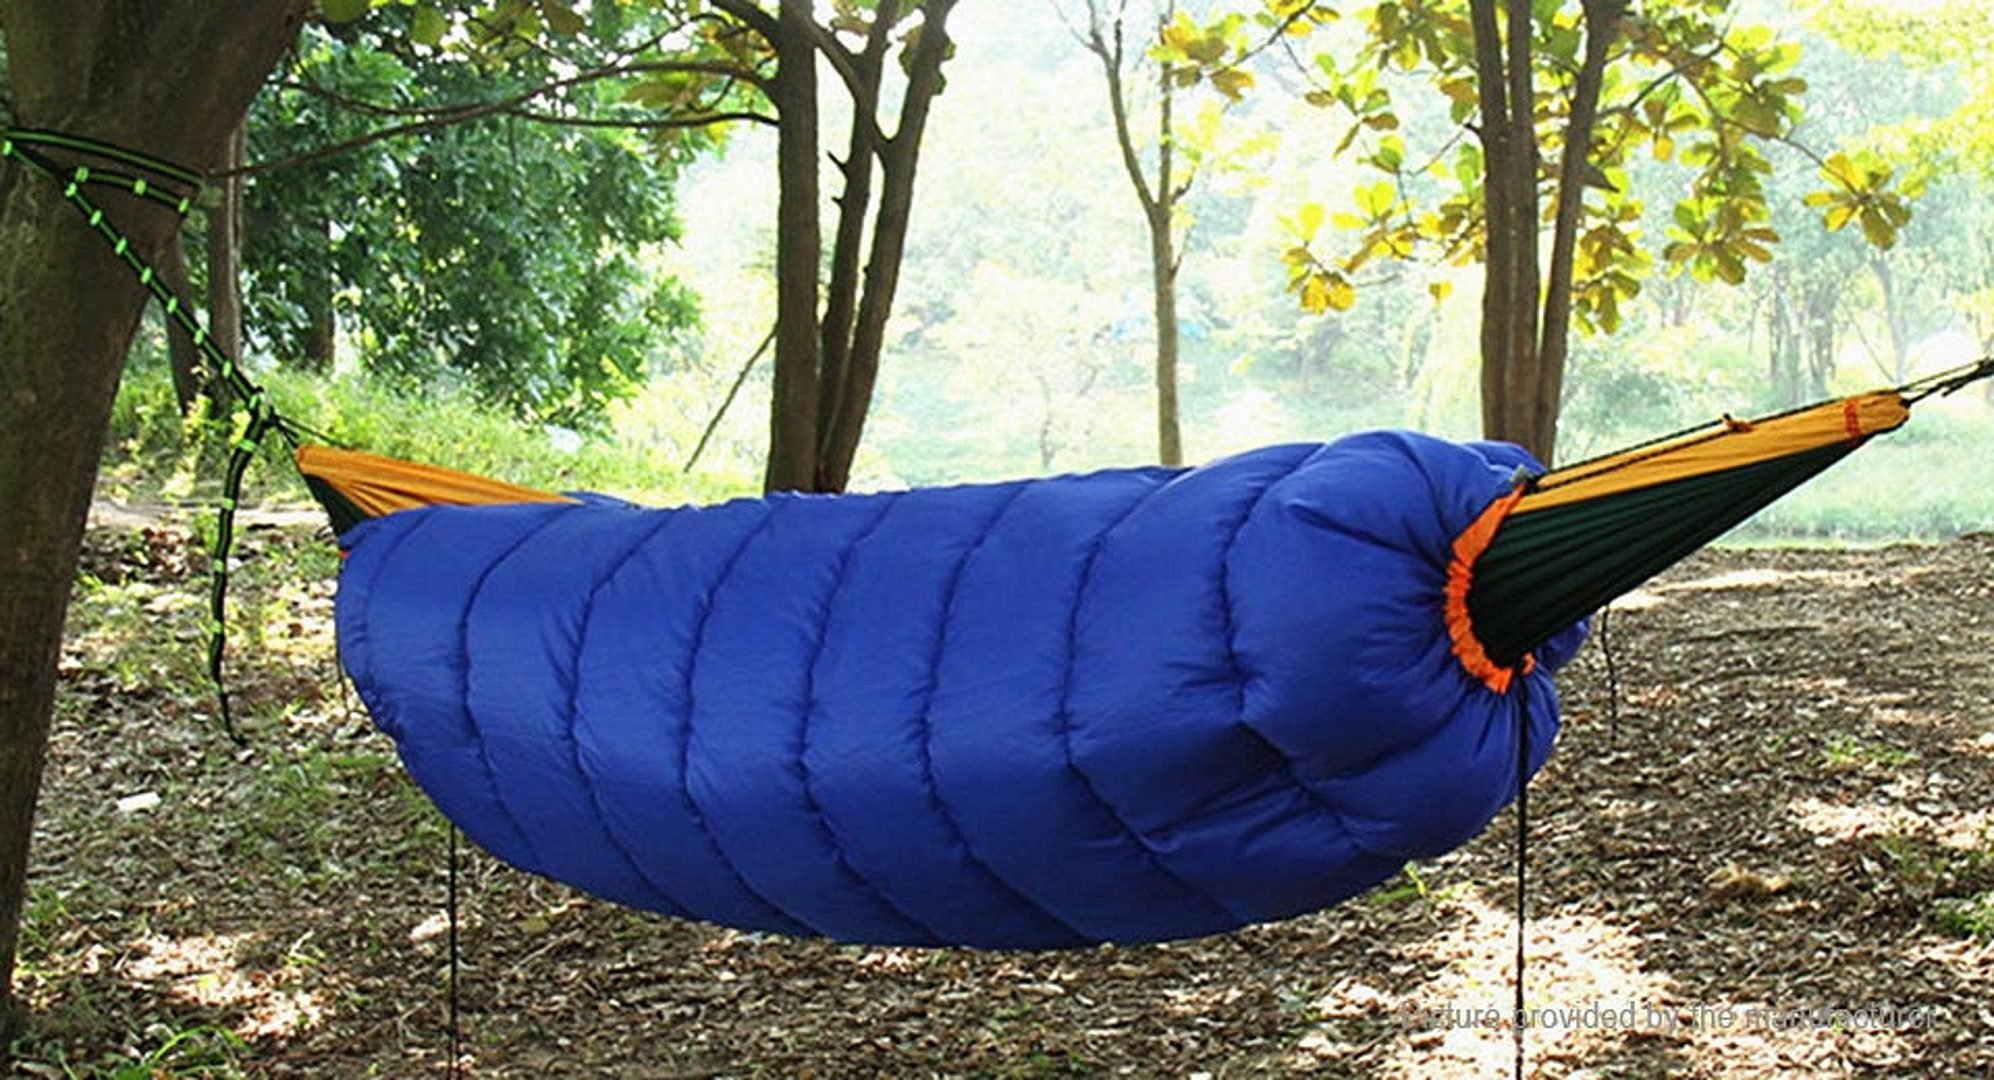 The 8 Best Hammock Sleeping Bags to Make Warmer Your Hammock Hanging